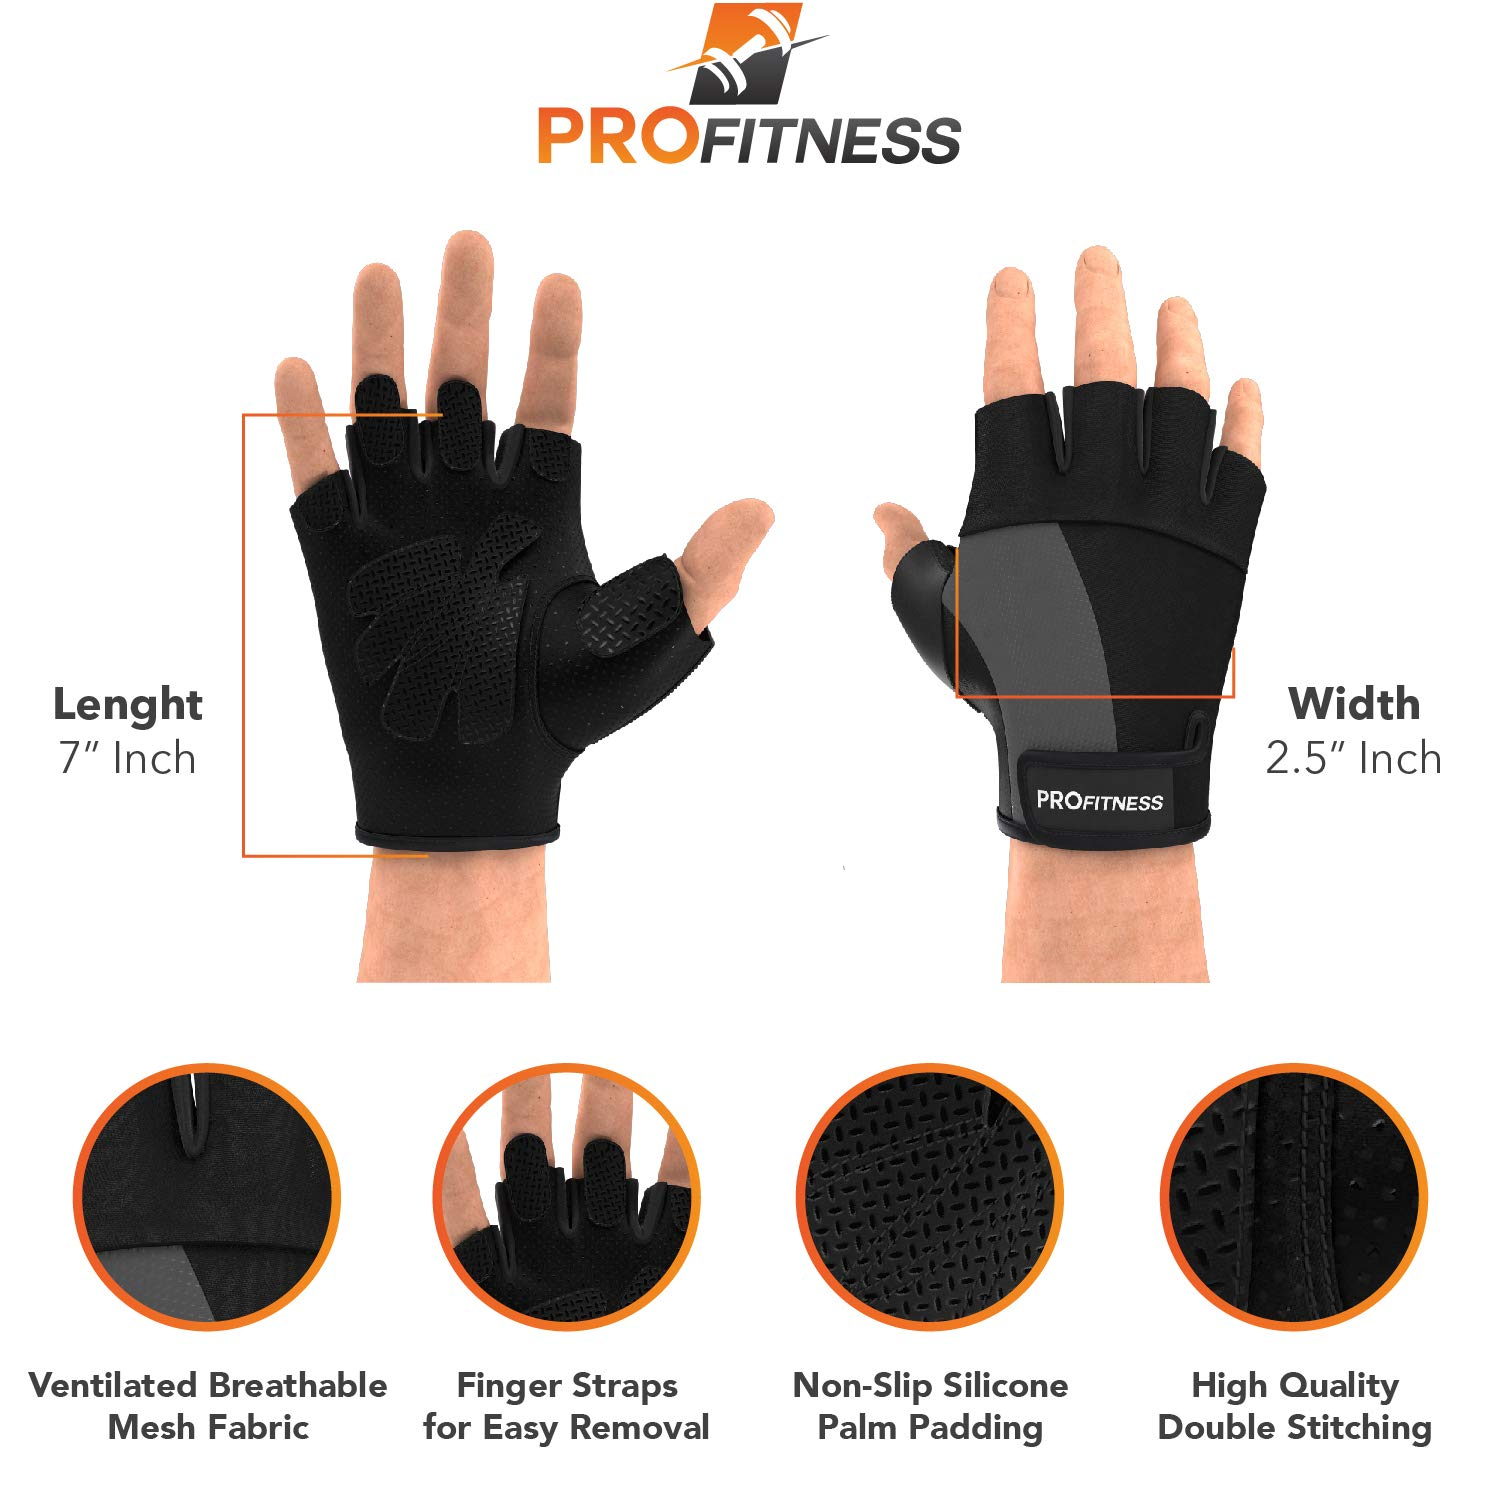 Strong Grip Workout Accessory for Men /& Women ProFitness Weight Lifting Gym Gloves   Durable Padded Design for Weightlifting Fingerless Cross Training Bodybuilding /& Powerlifting